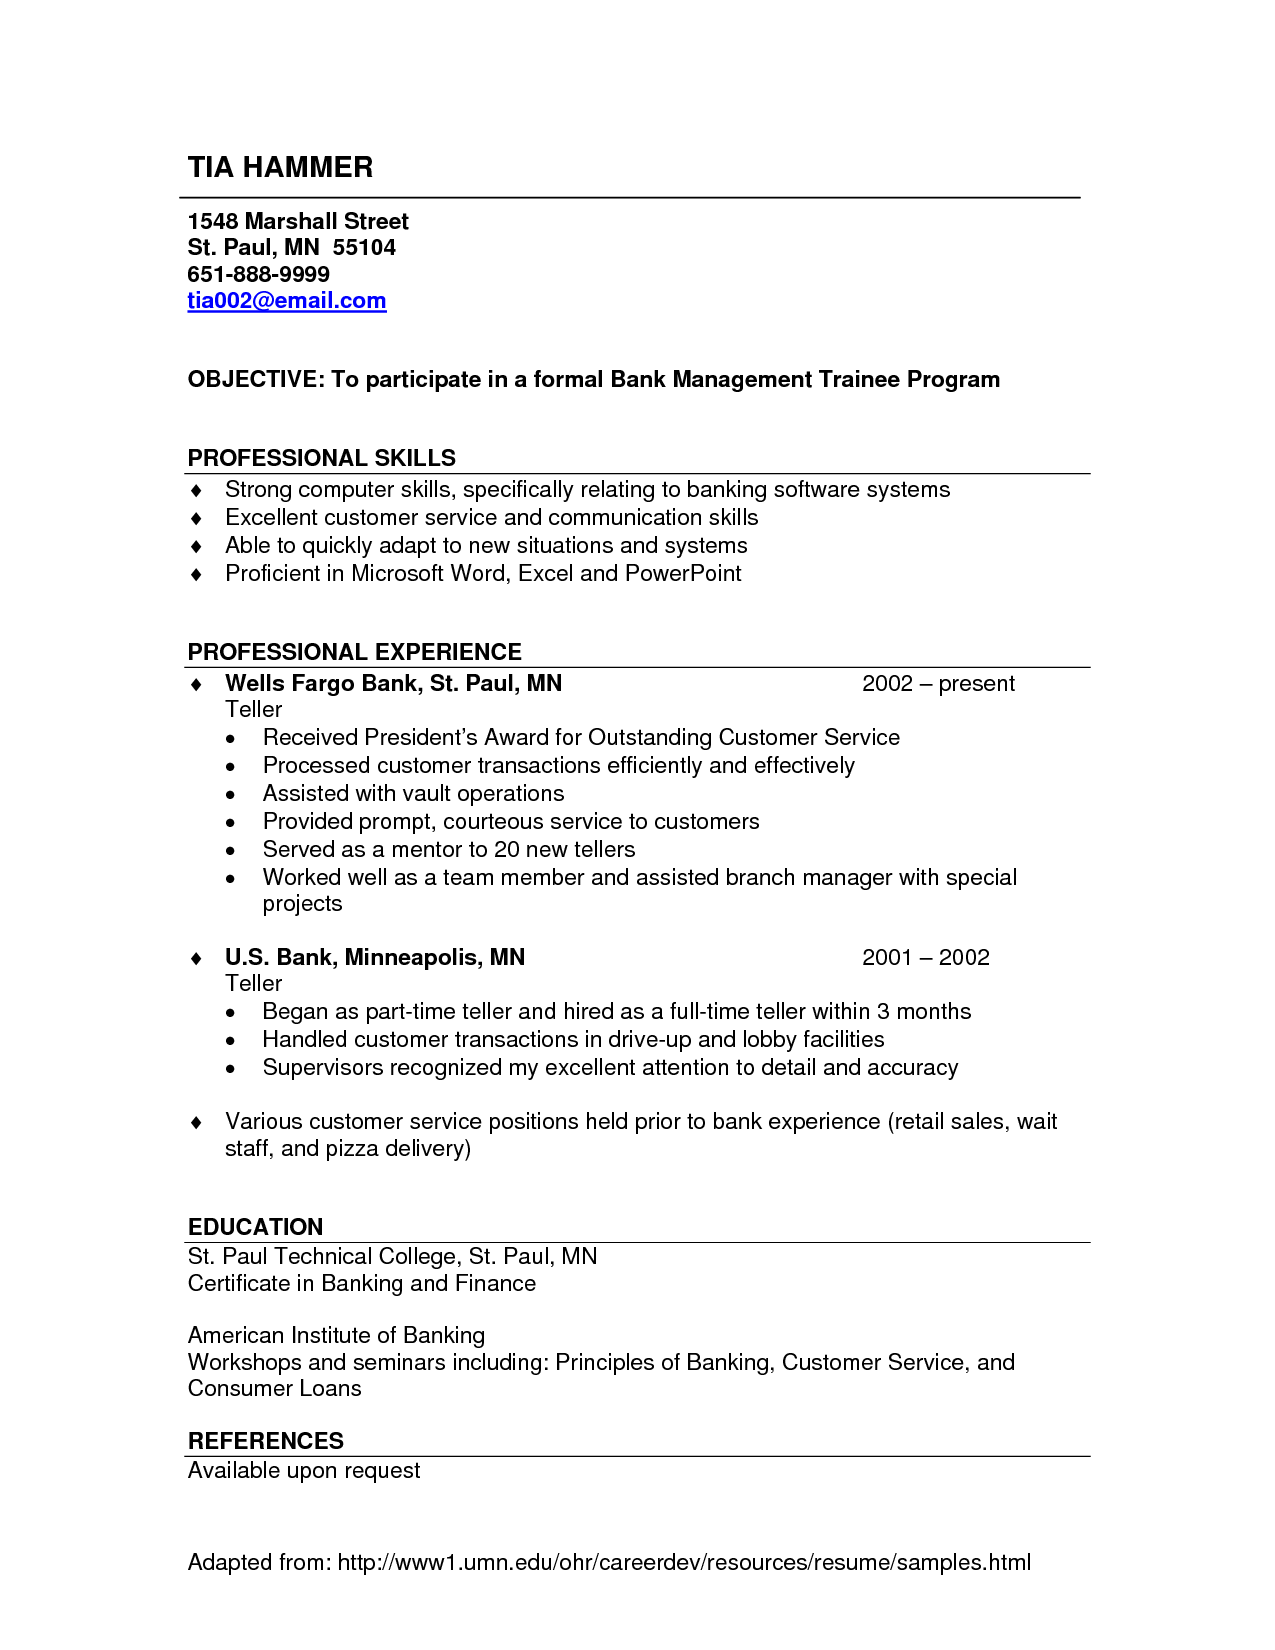 Sample Bank Teller Resume With No Experience   Http://www.resumecareer.